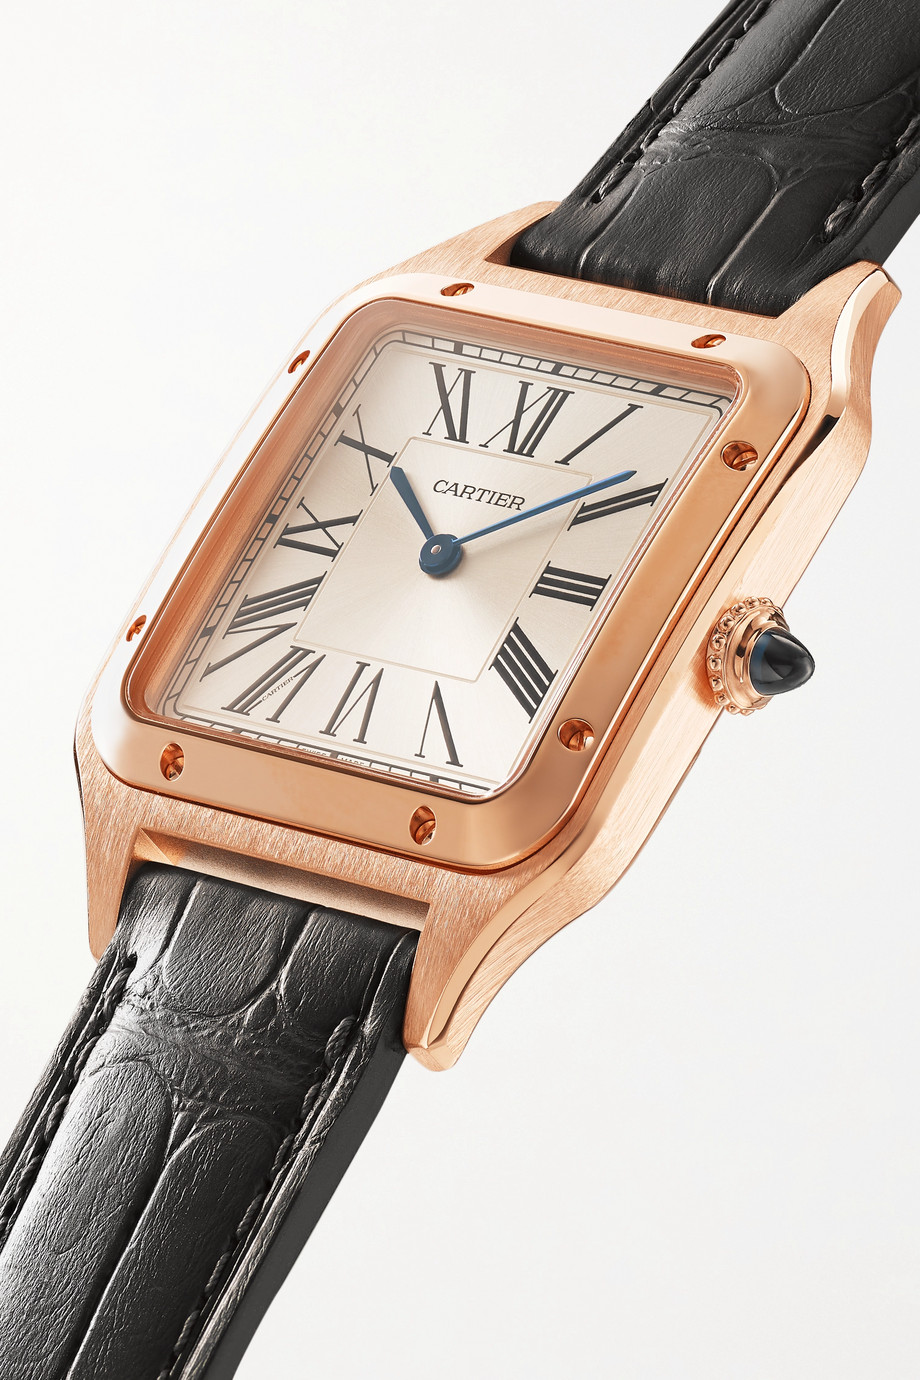 Cartier Santos-Dumont Automatic 31.4mm large 18-karat pink gold and alligator watch